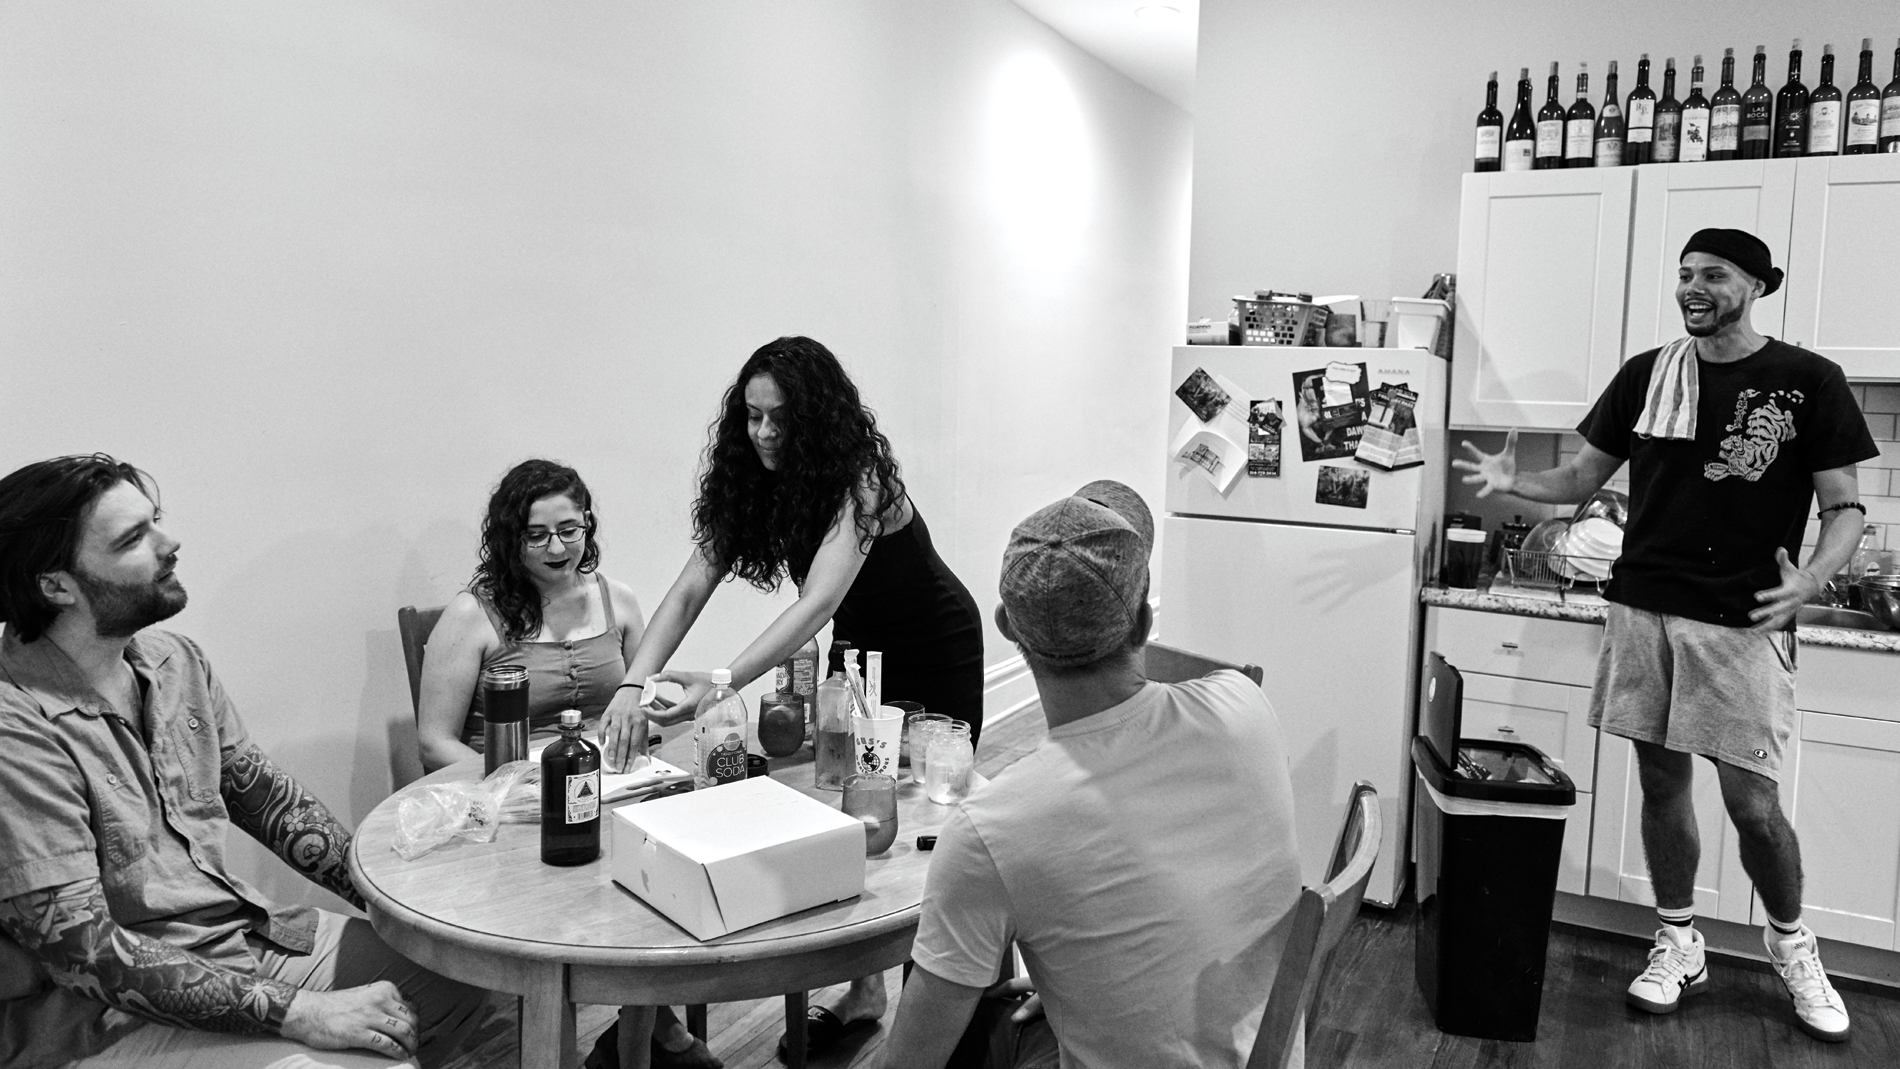 a crowd of people in an apartment kitchen laughing